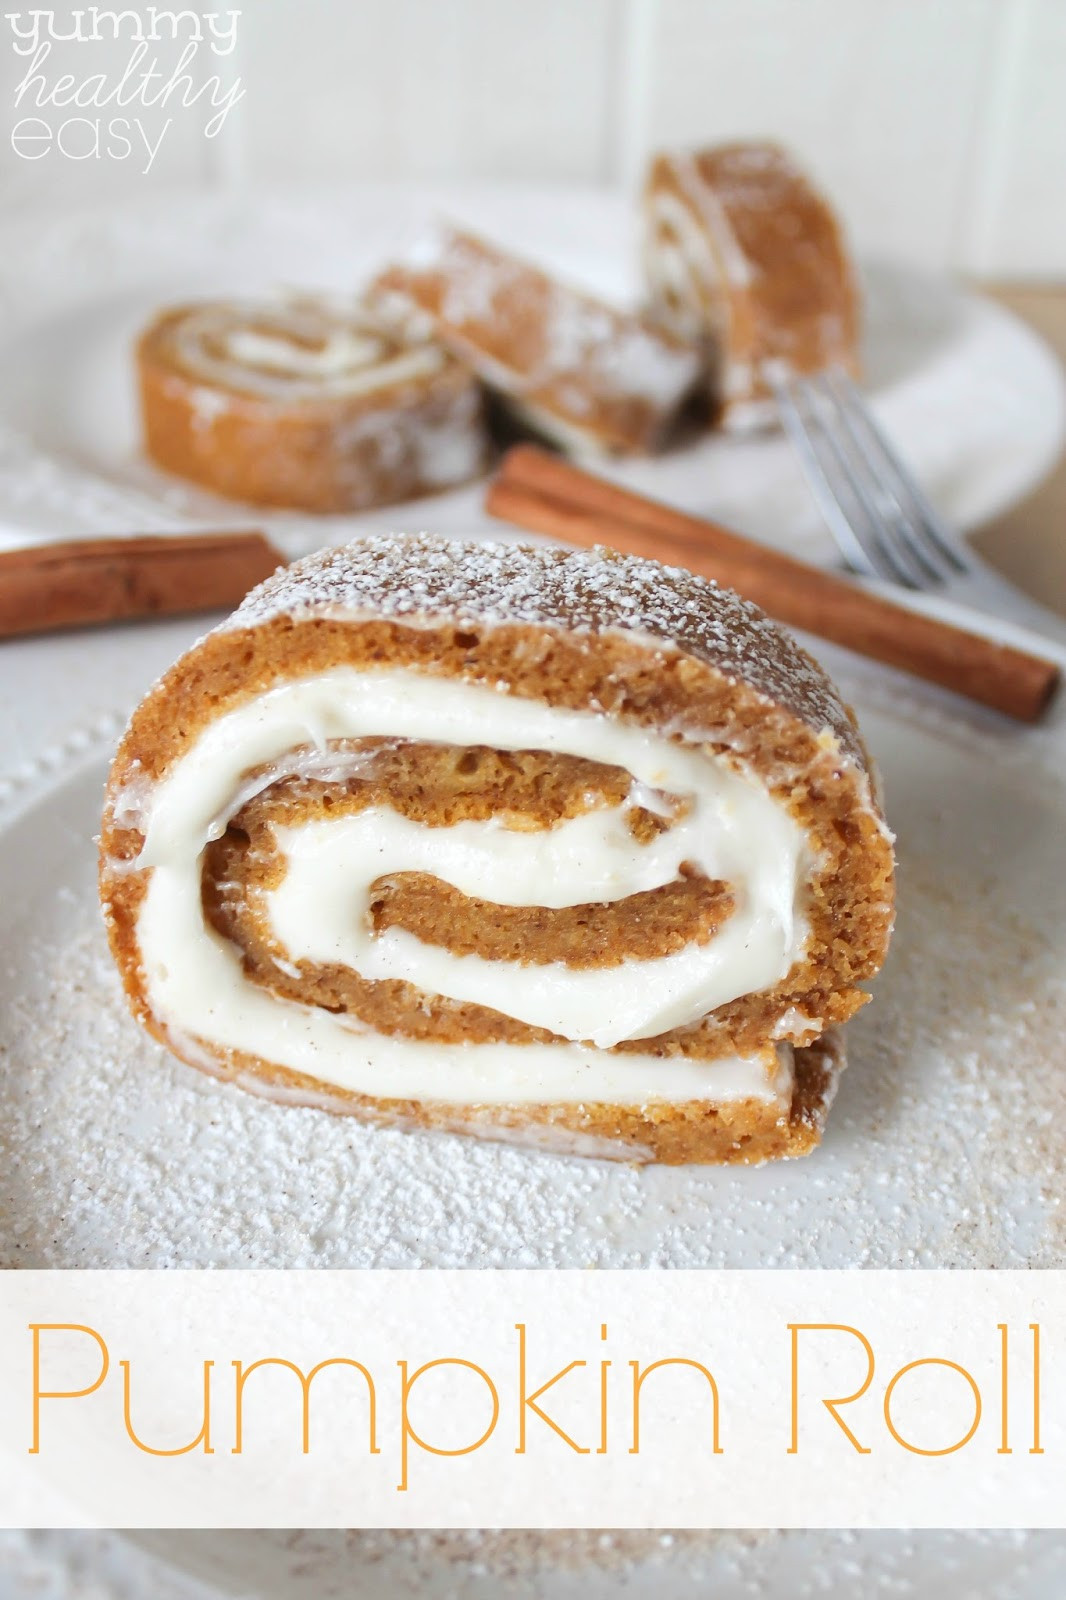 Healthy Fall Dessert Recipes  Easy Pumpkin Roll Dessert Yummy Healthy Easy